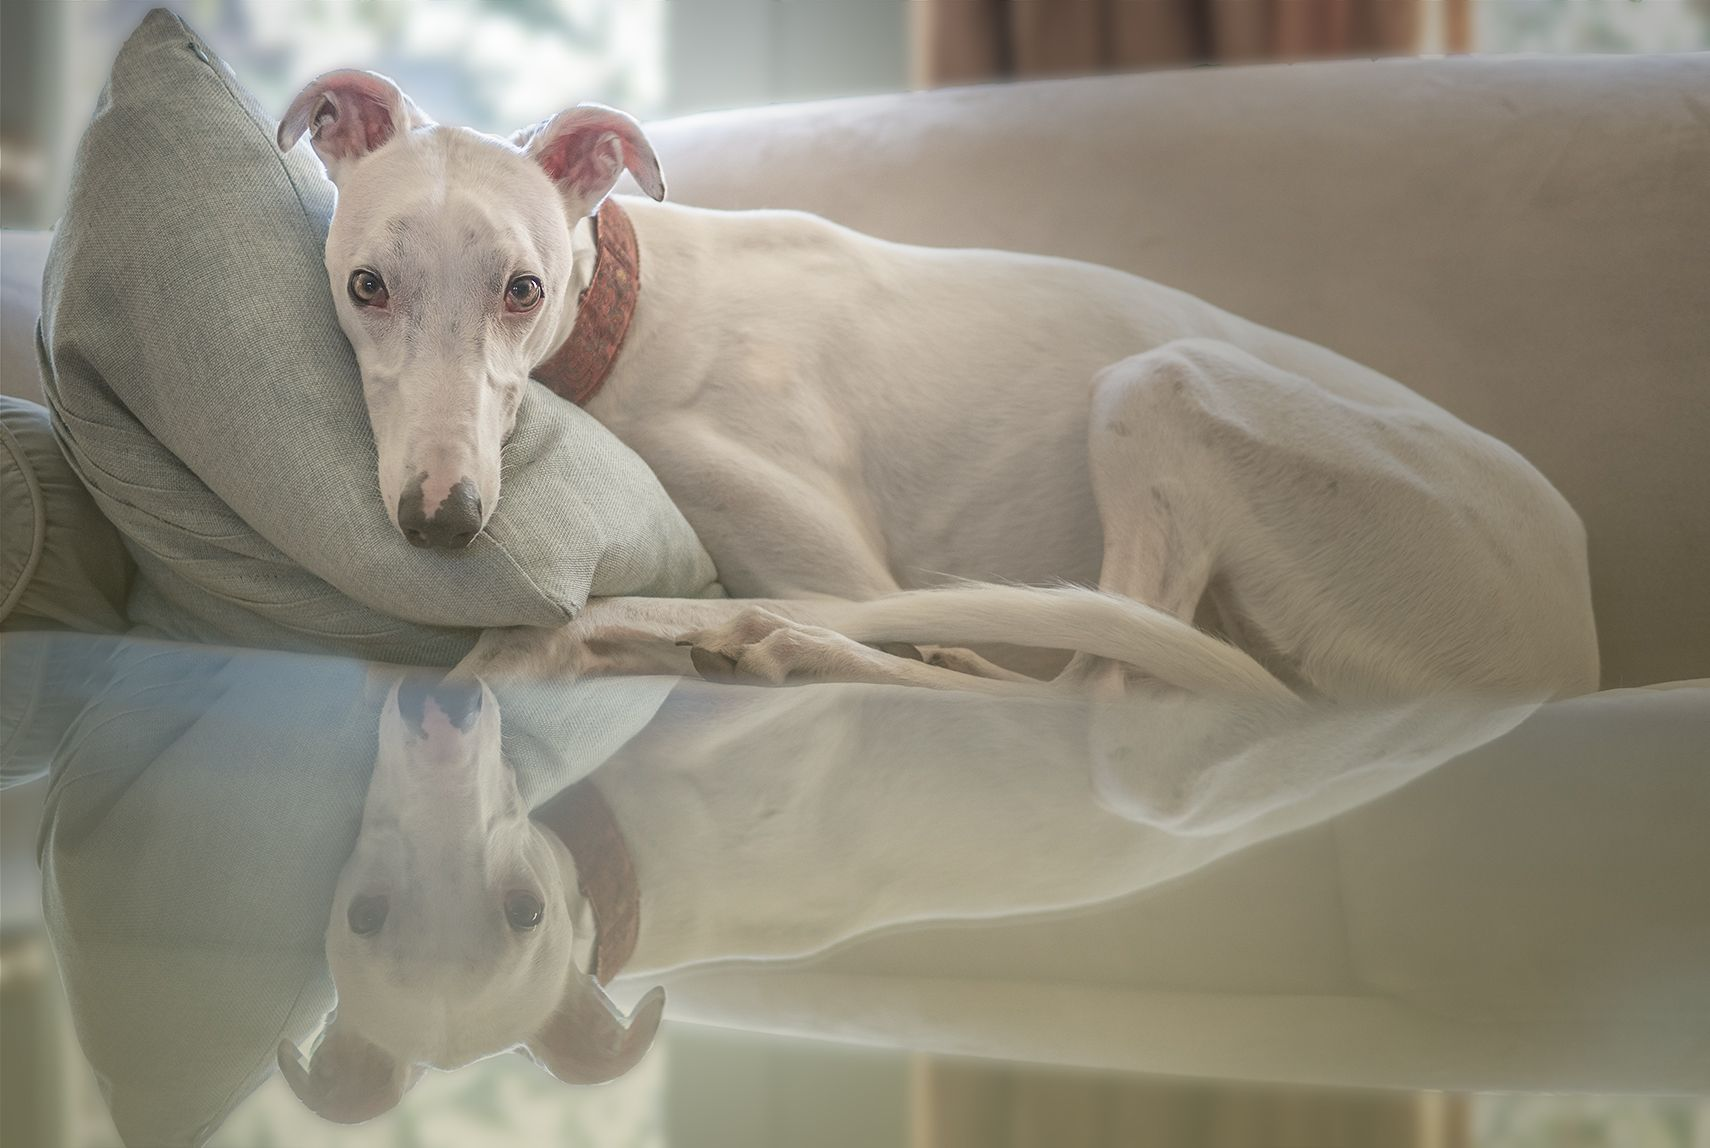 White Greyhound Dog on Sofa by Zurich Photographer L Argote